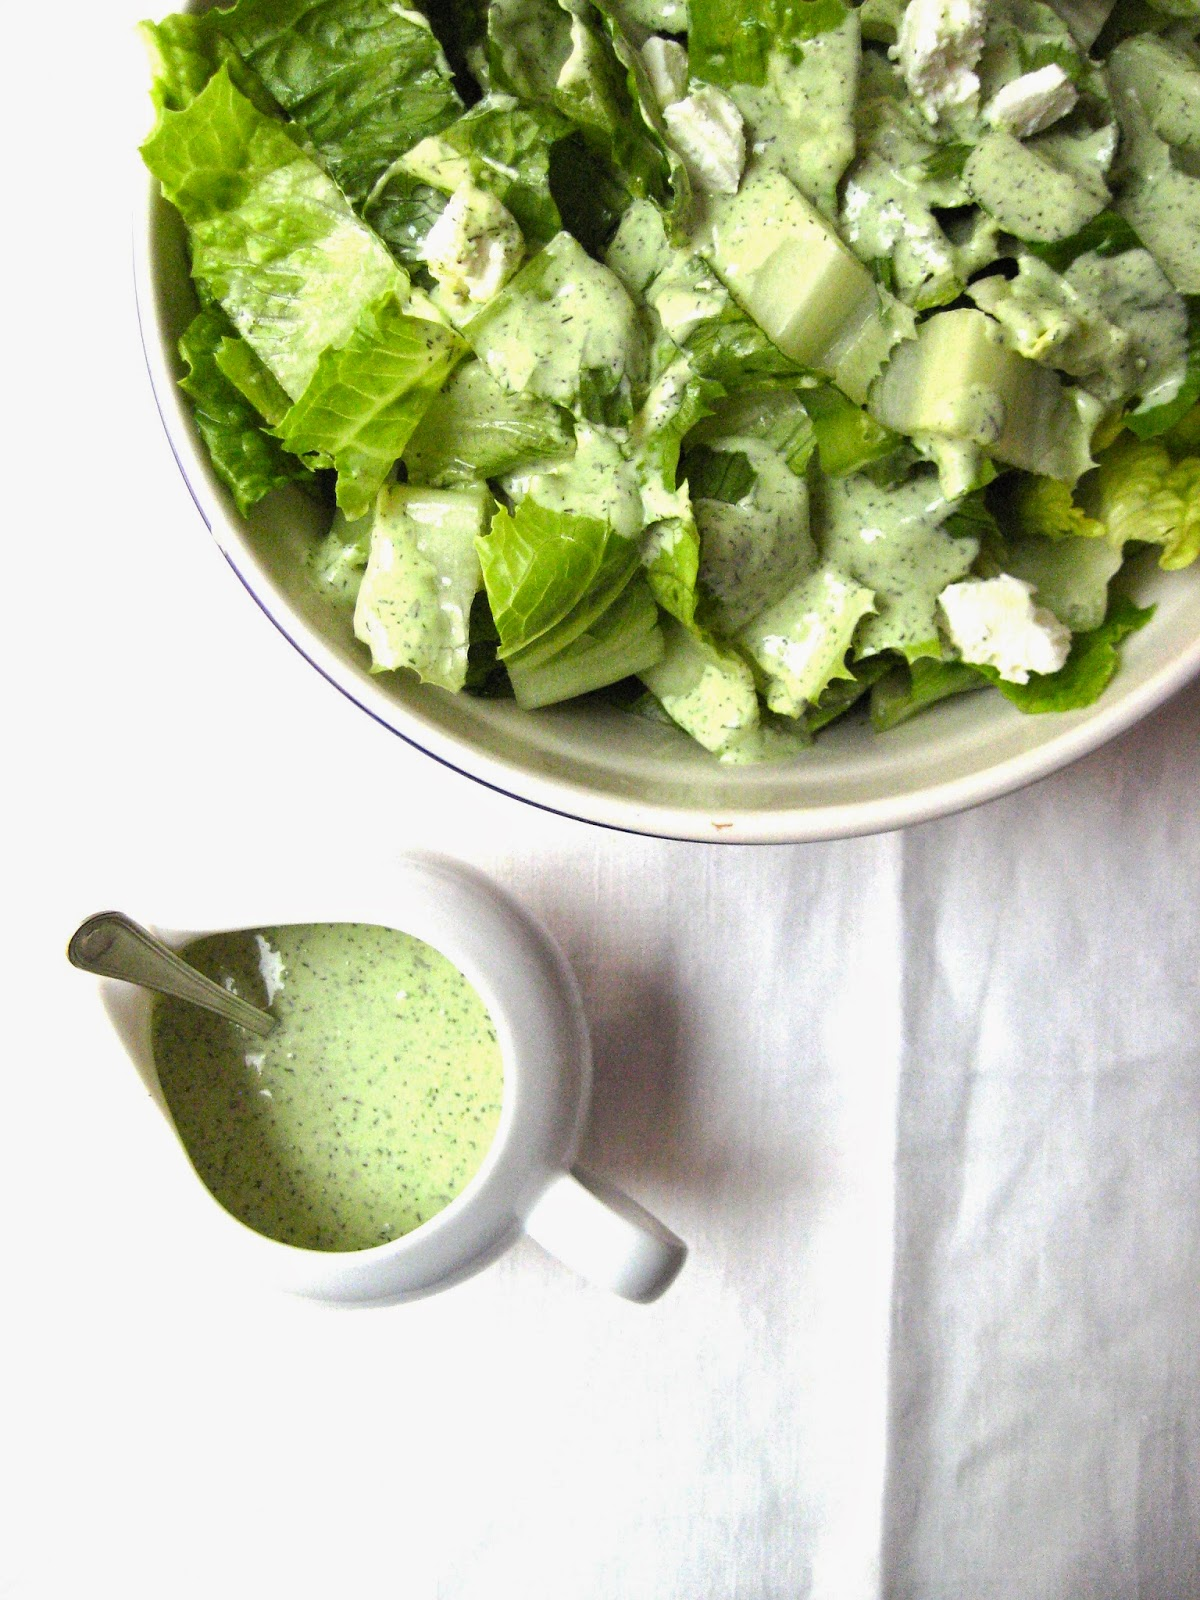 ... salad with garlicky buttermilk, goat cheese and fresh dill dressing